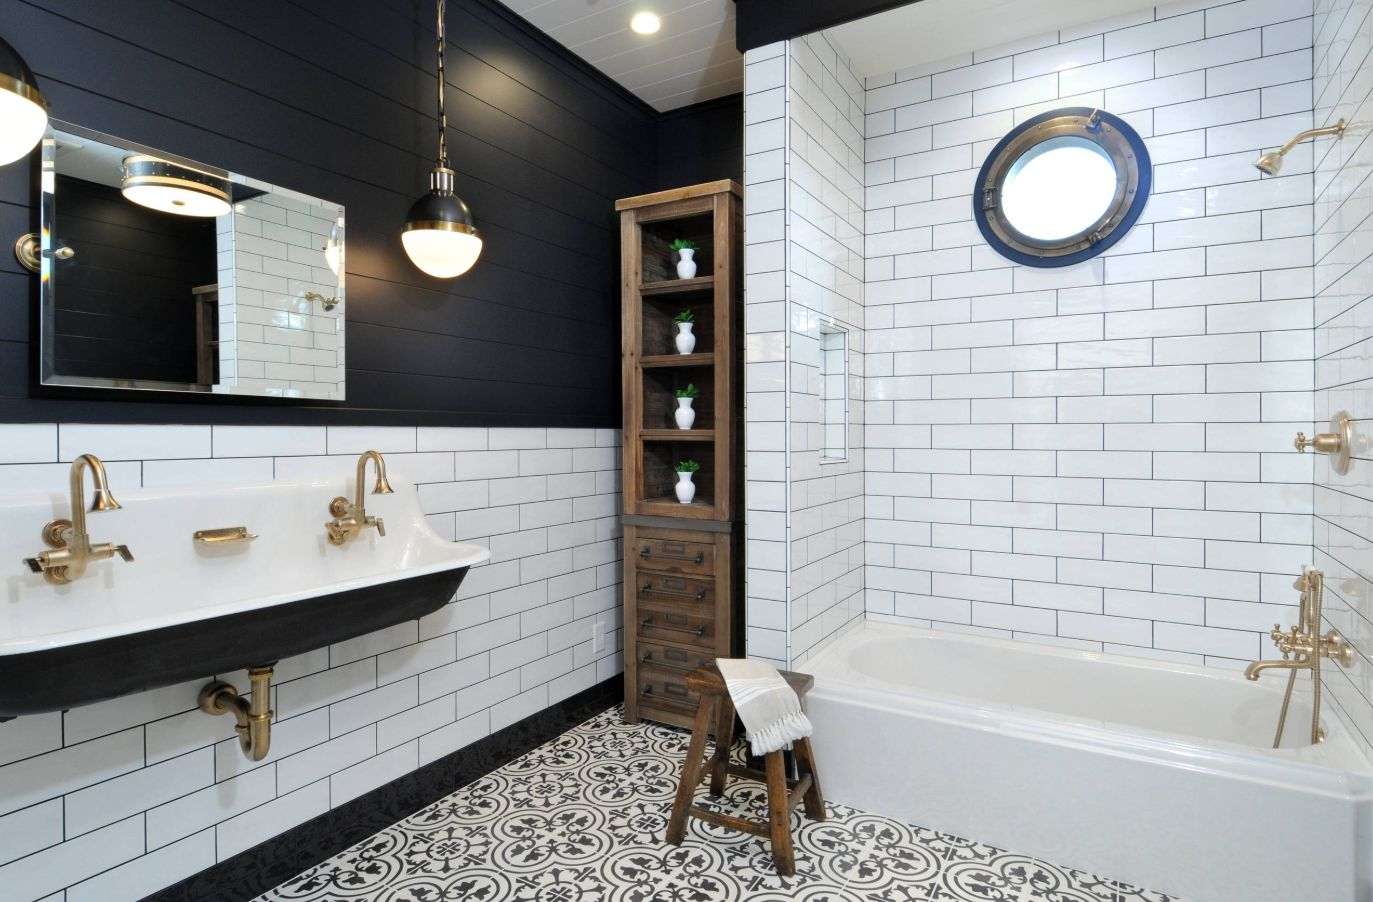 1558953967 35 black and white bathroom designs that show simple can also be interesting - Black and White Bathroom Designs That Show Simple Can Also Be Interesting